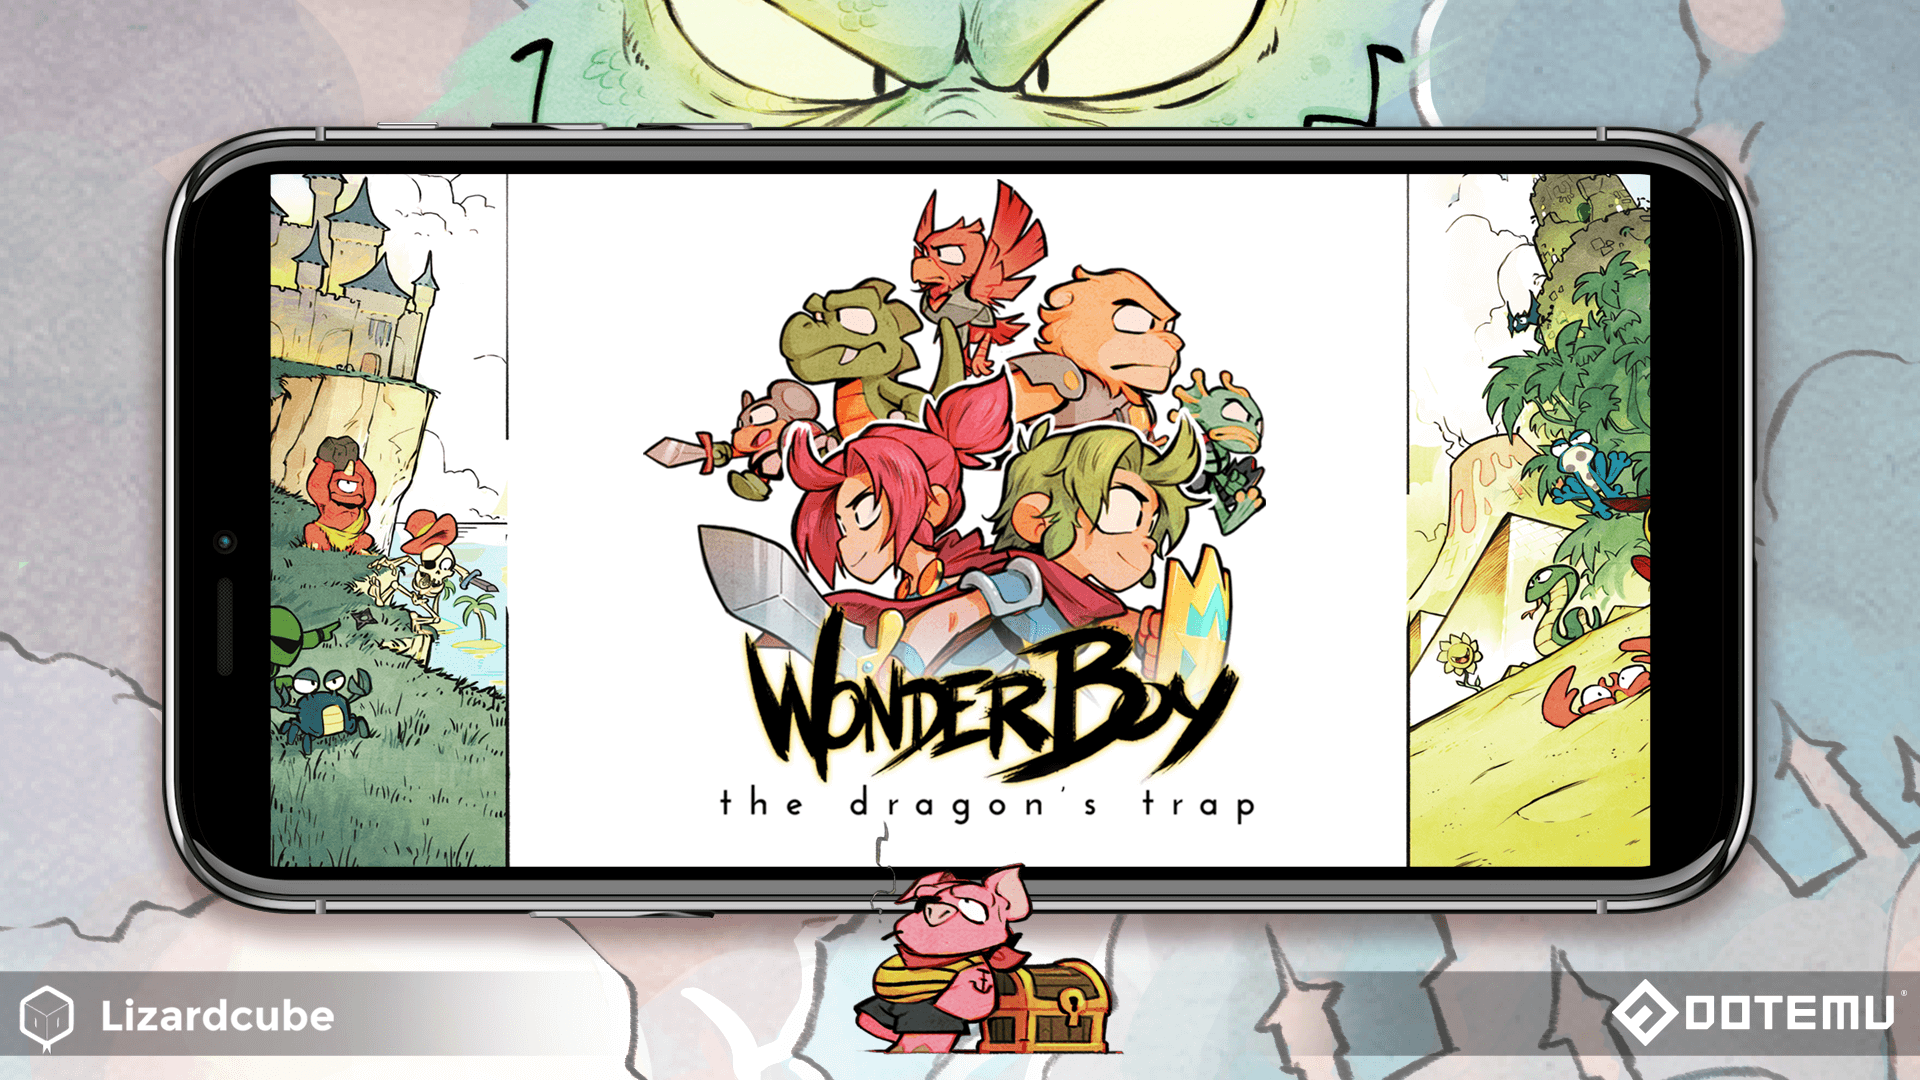 Wonder Boy The Dragon's Trap is now available on iOS and Android!